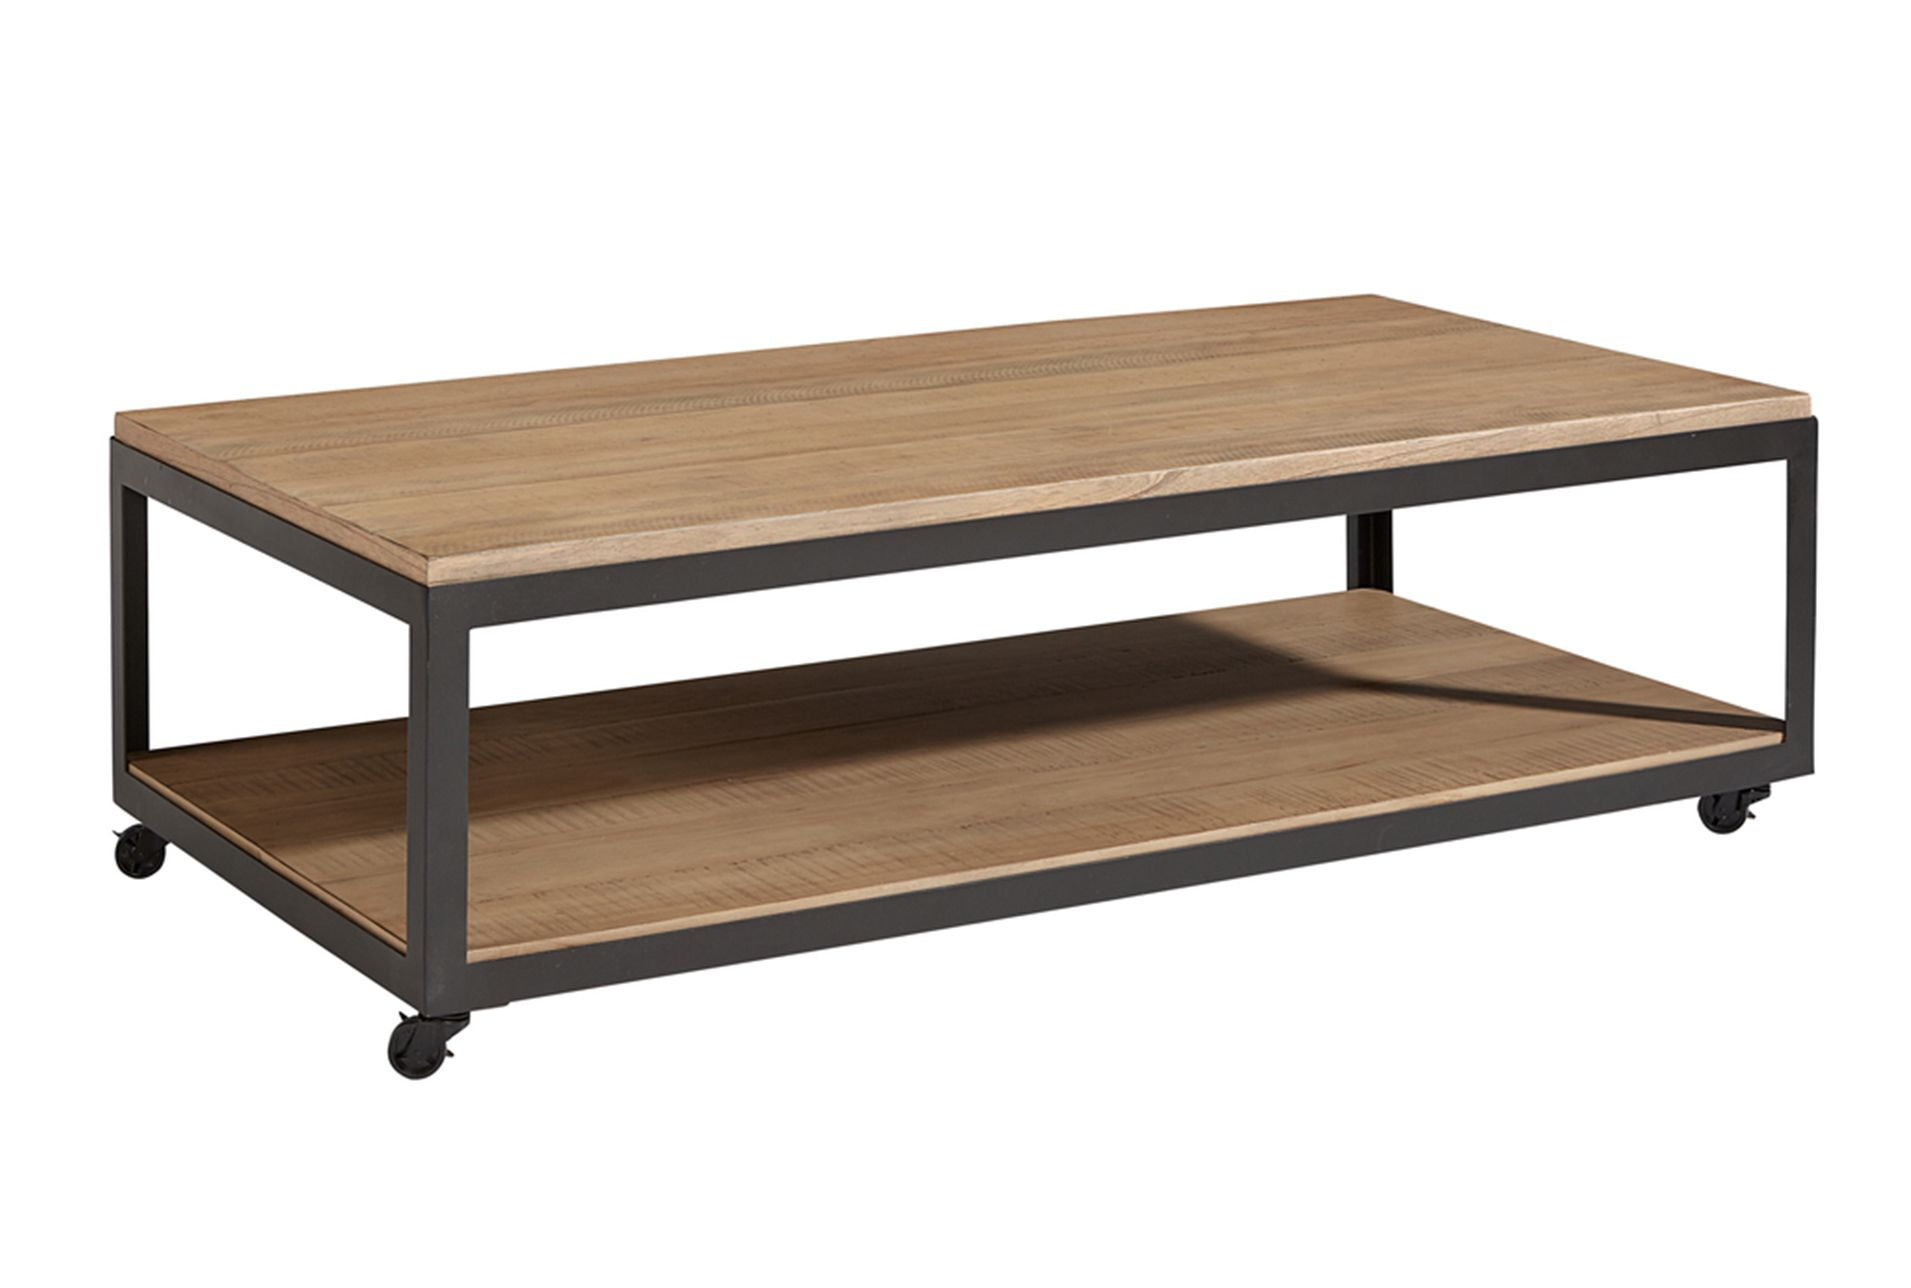 Amazing Magnolia Home Bastrop Coffee Table Products In 2019 Gmtry Best Dining Table And Chair Ideas Images Gmtryco